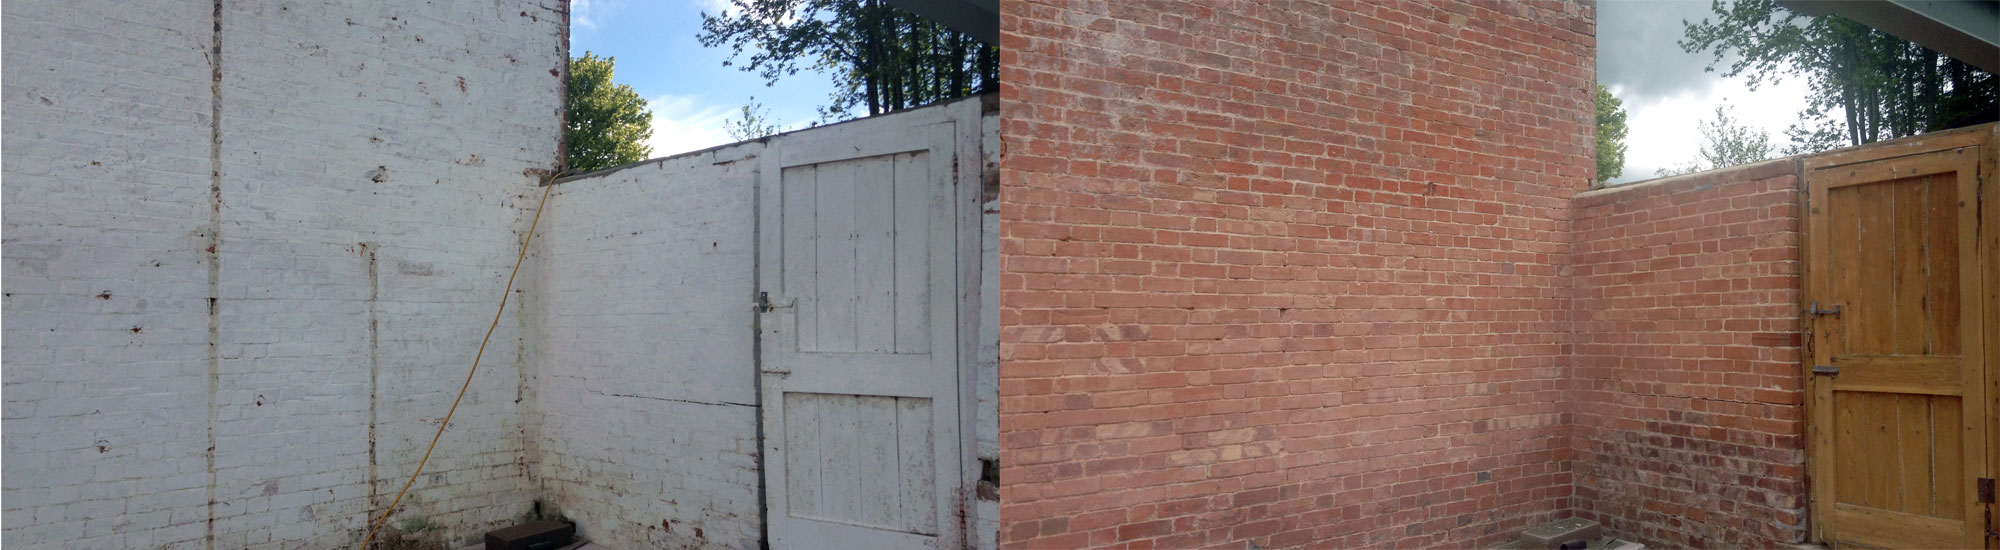 Brick Wall Blast Cleaning Paint Removal